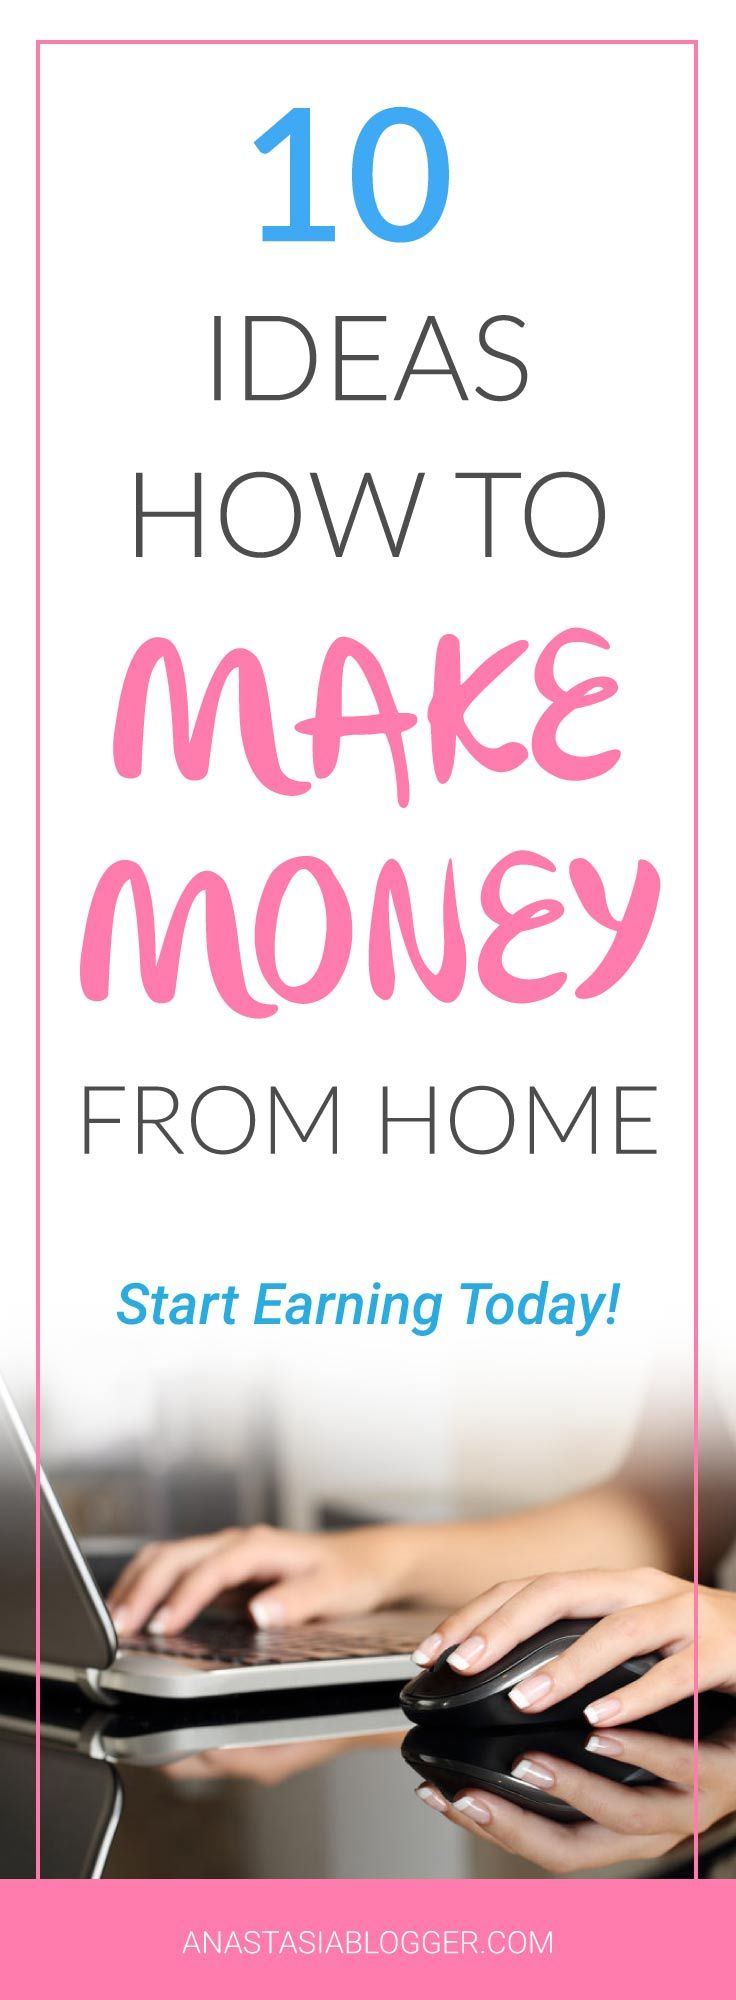 10 Ideas How to Make Money from Home - Earn Money at Home ...